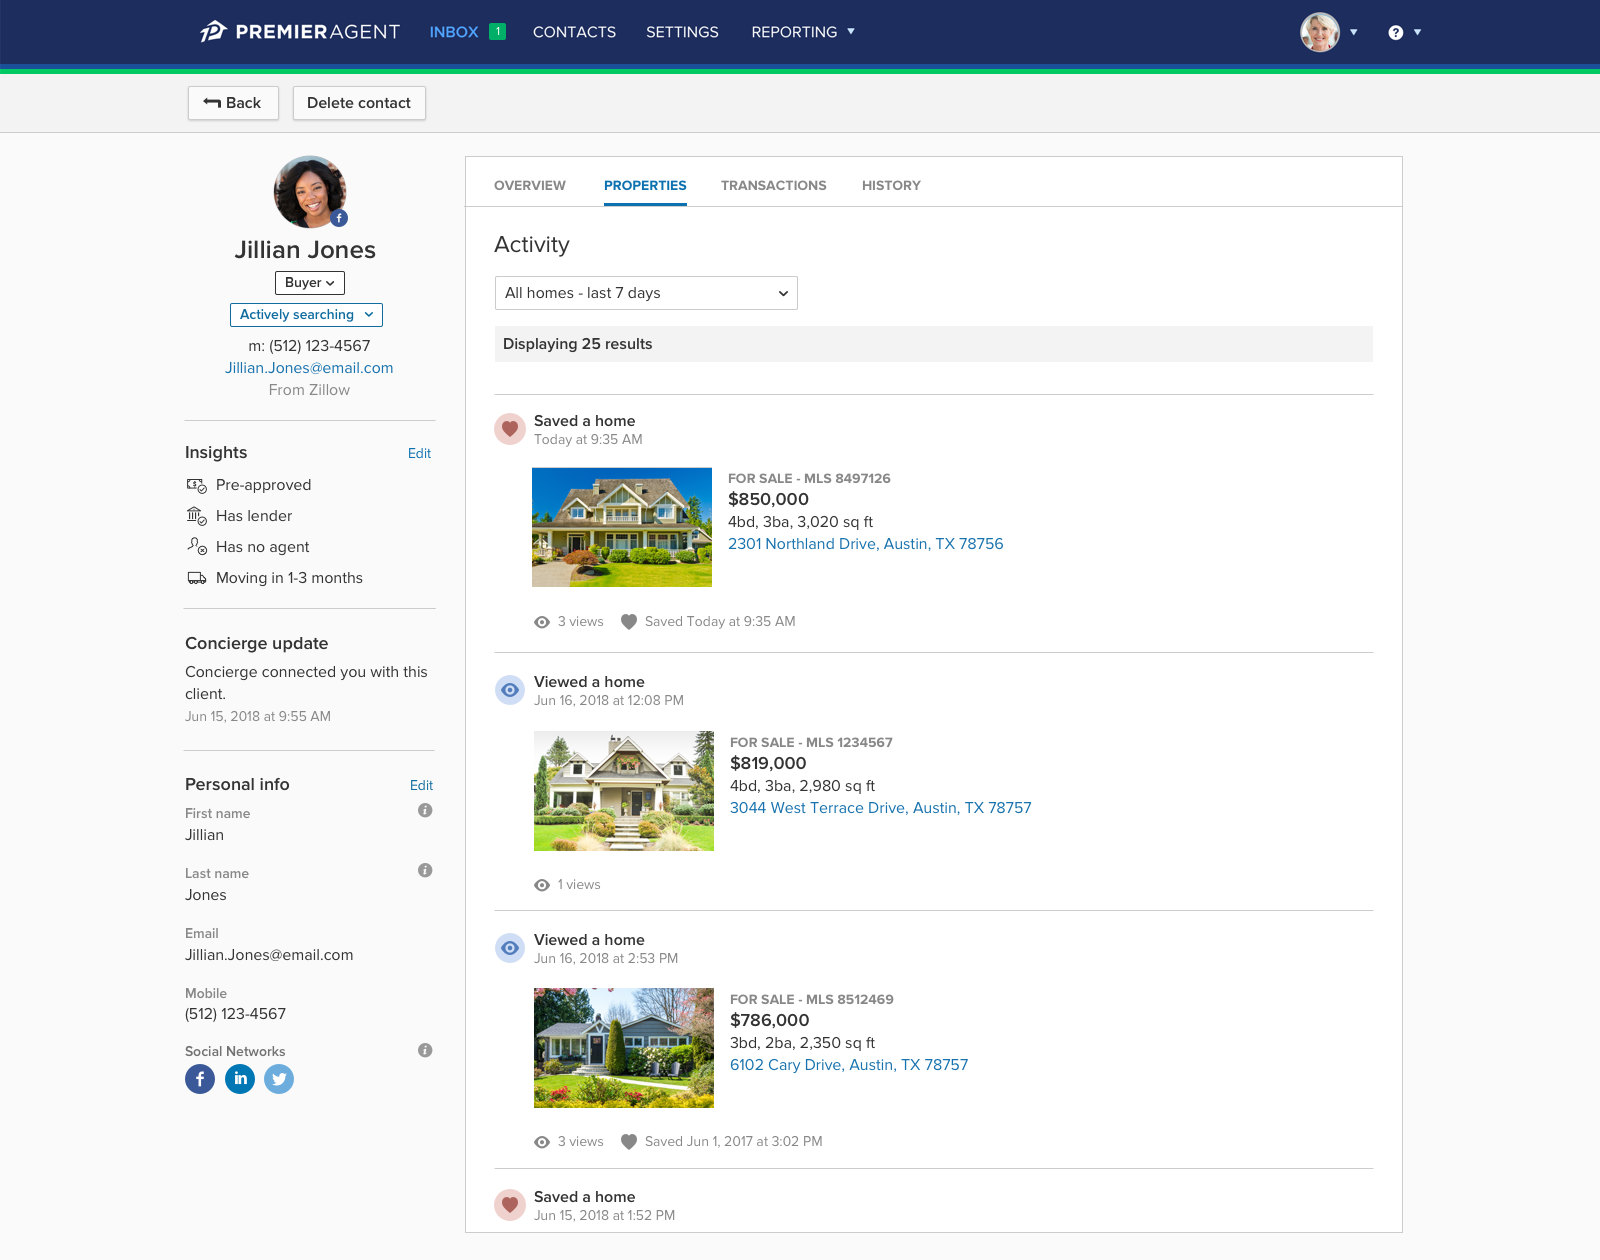 Zillow Premier Agent's easy to navigate CRM